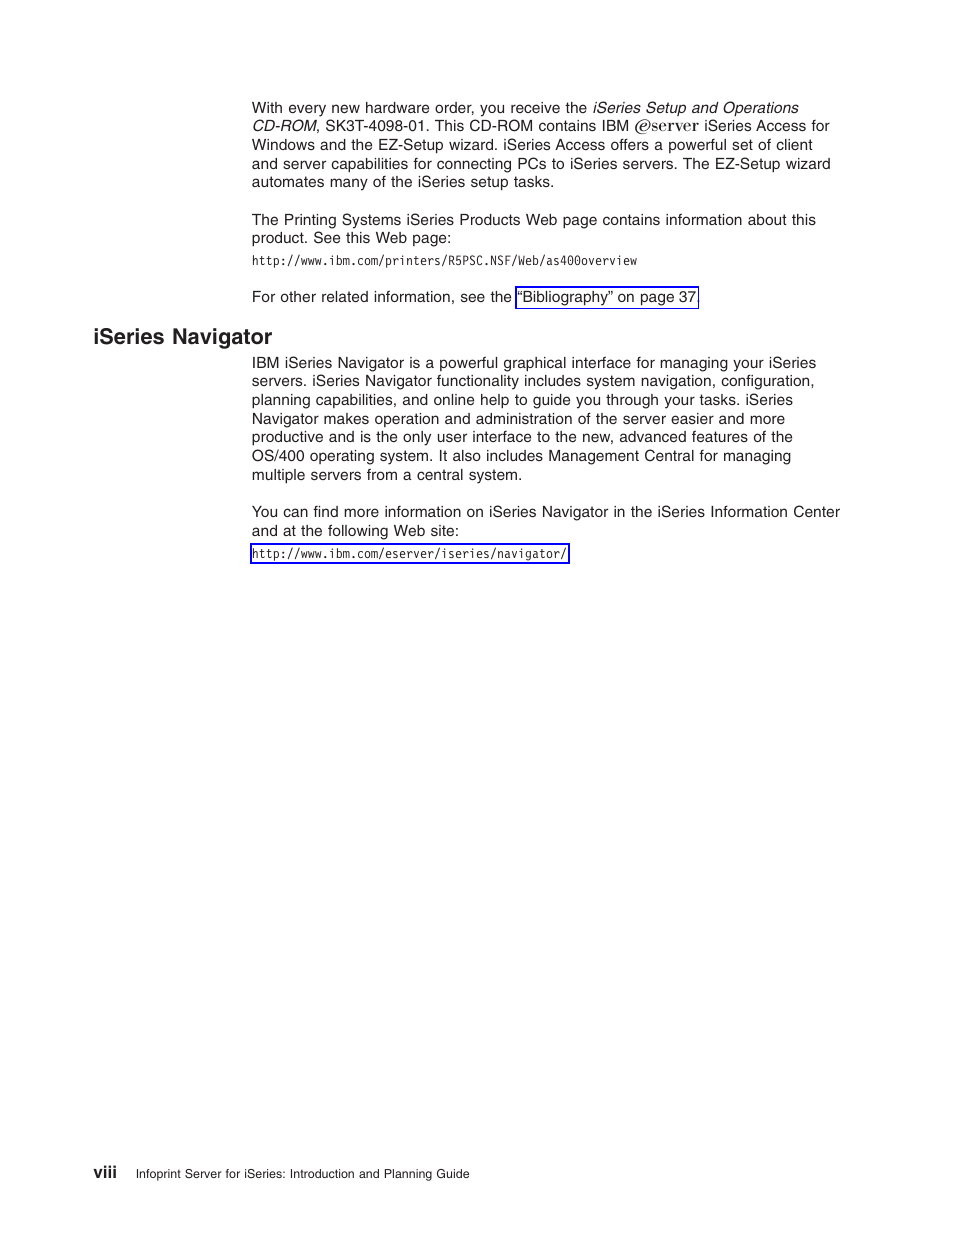 Iseries navigator | IBM G544-5774-01 User Manual | Page 10 / 56